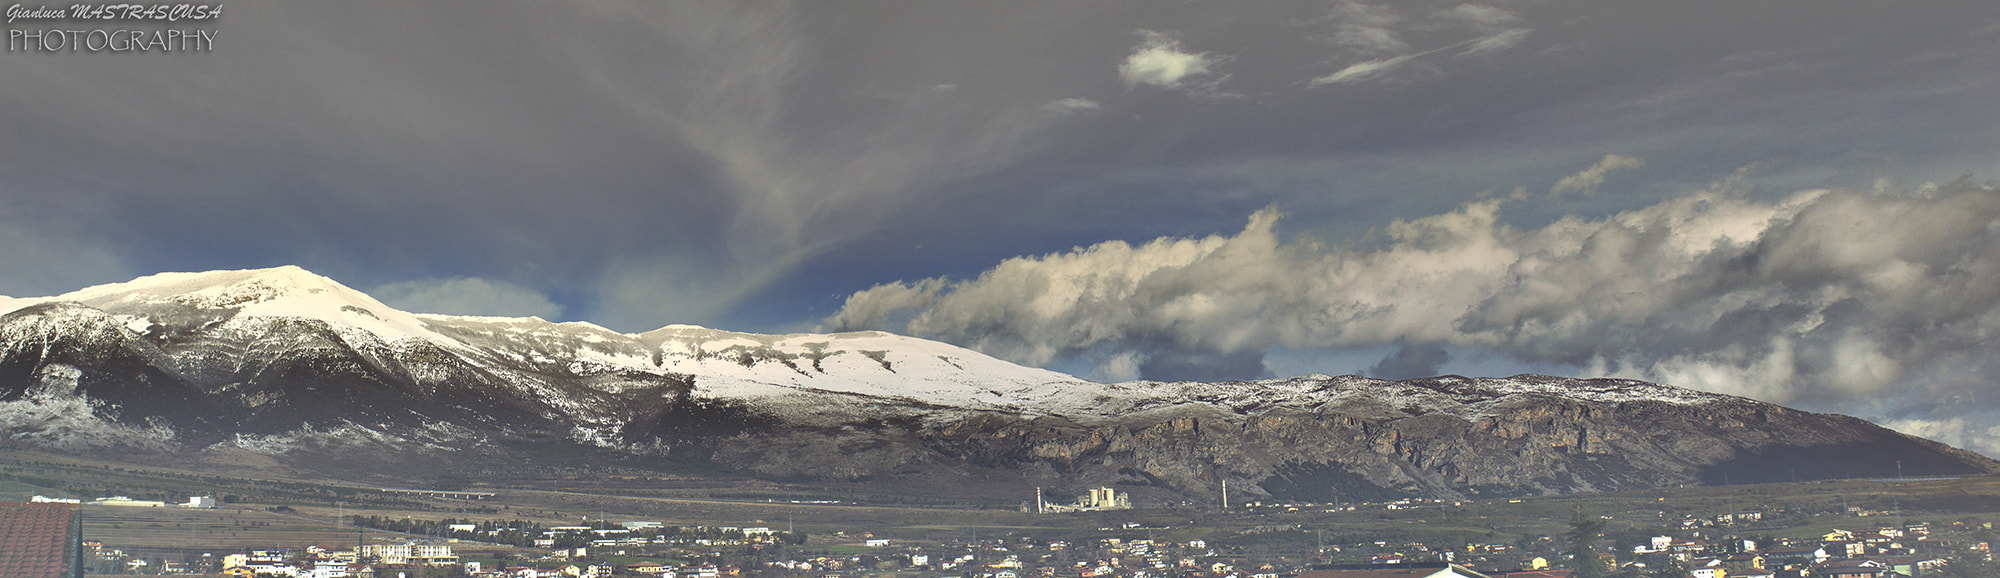 Photograph Pollino With Snow by Gianluca Mastrascusa on 500px